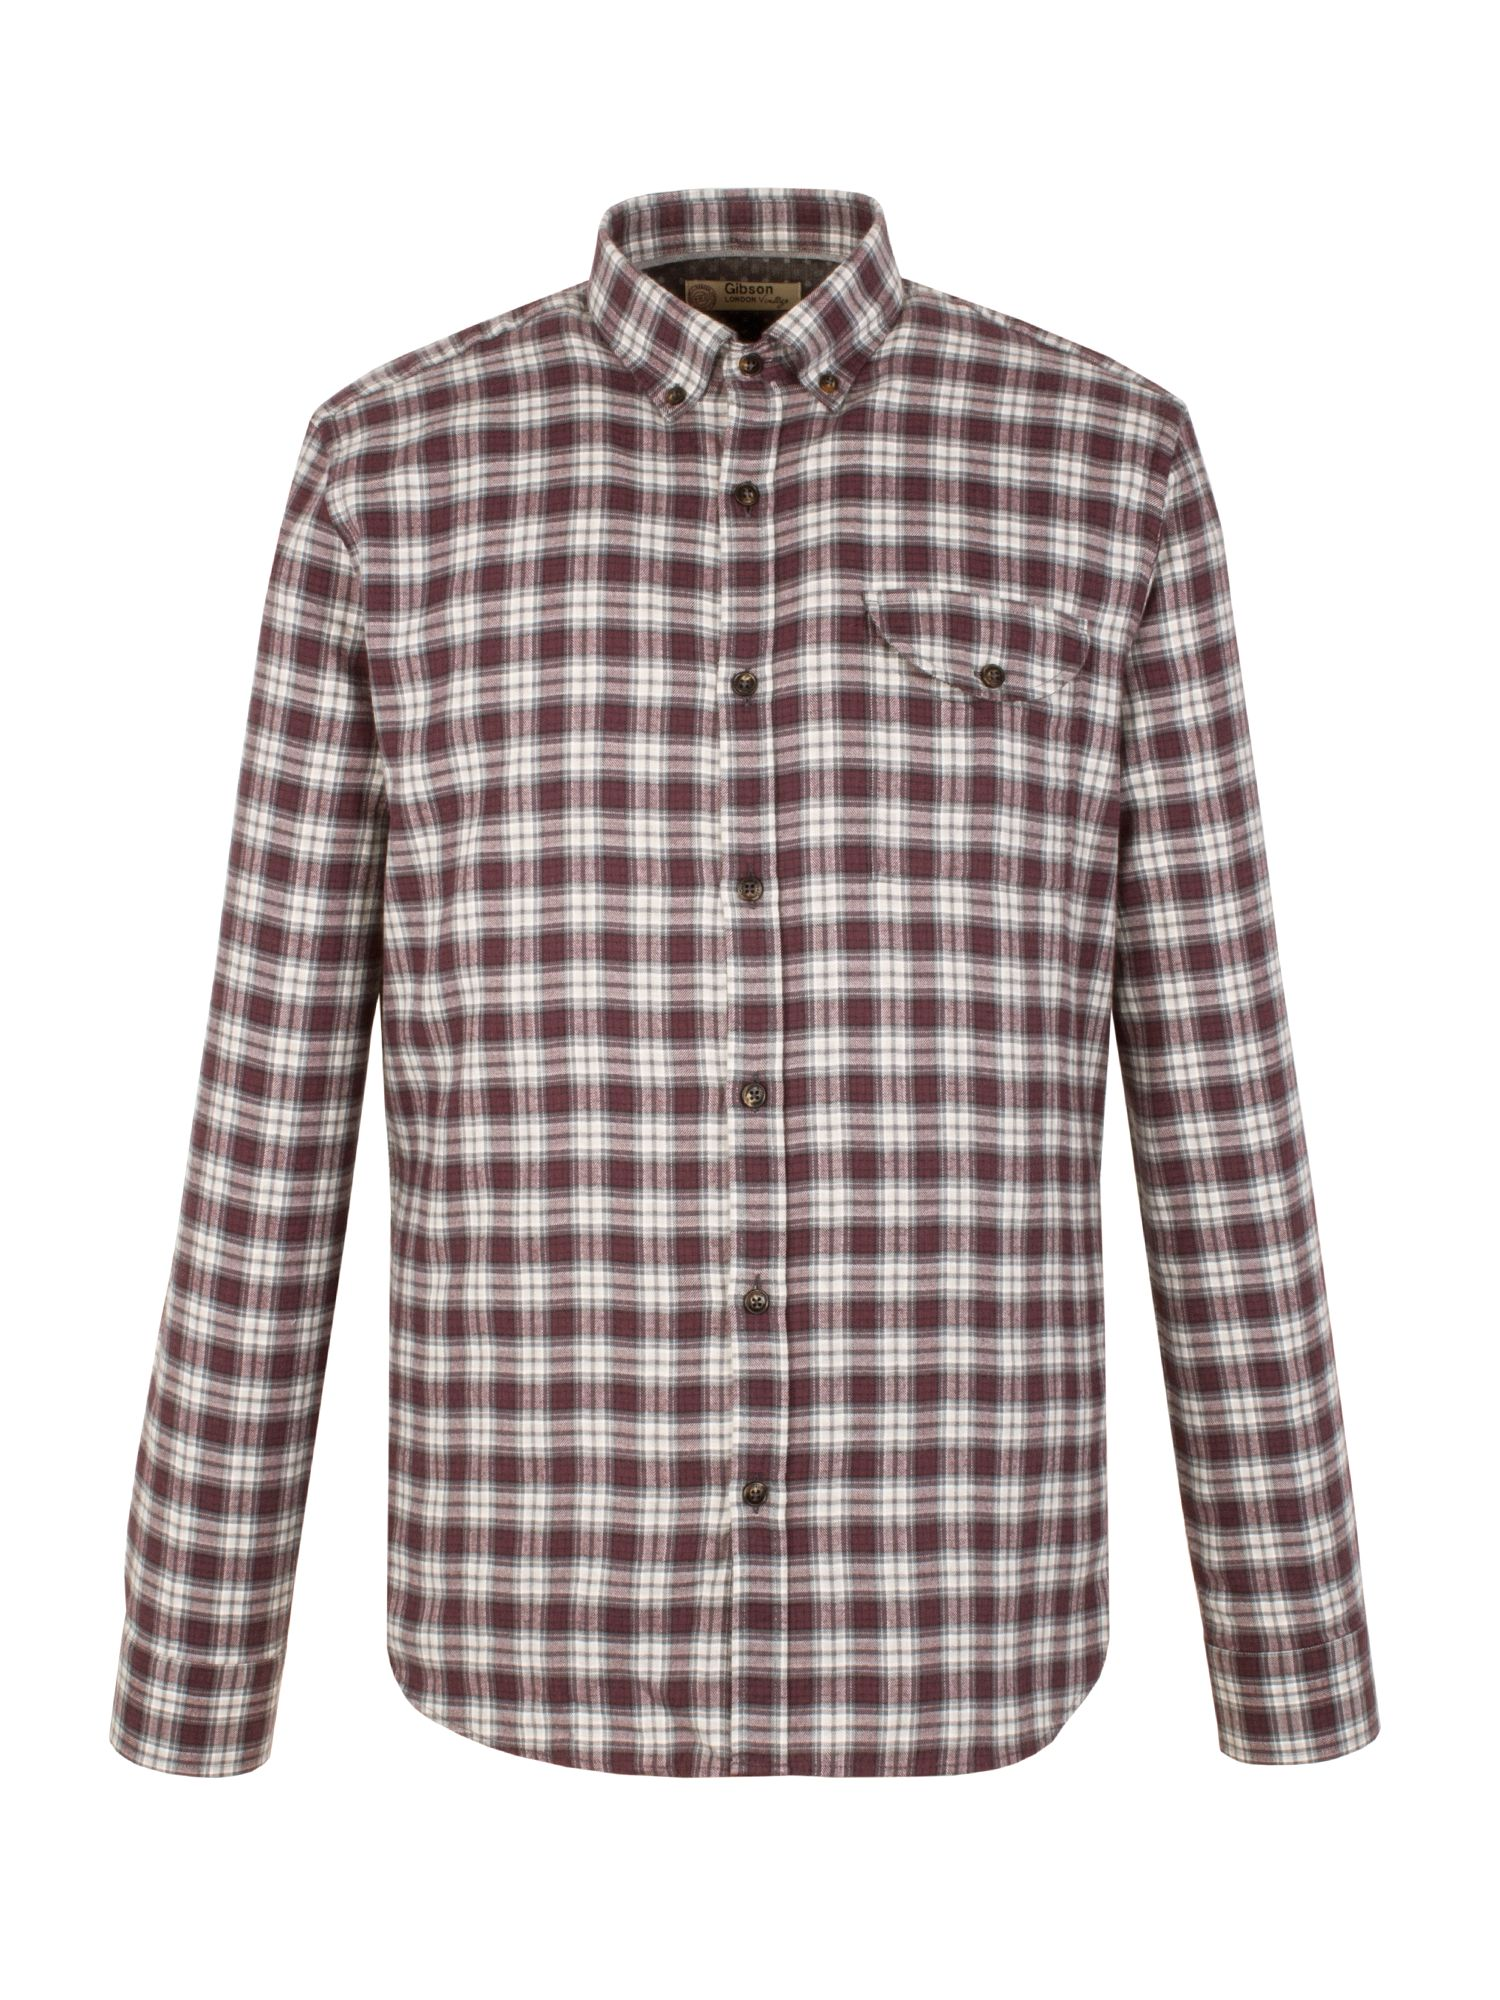 Mens Gibson Check Tailored Fit Long Sleeve Shirt $37.50 AT vintagedancer.com